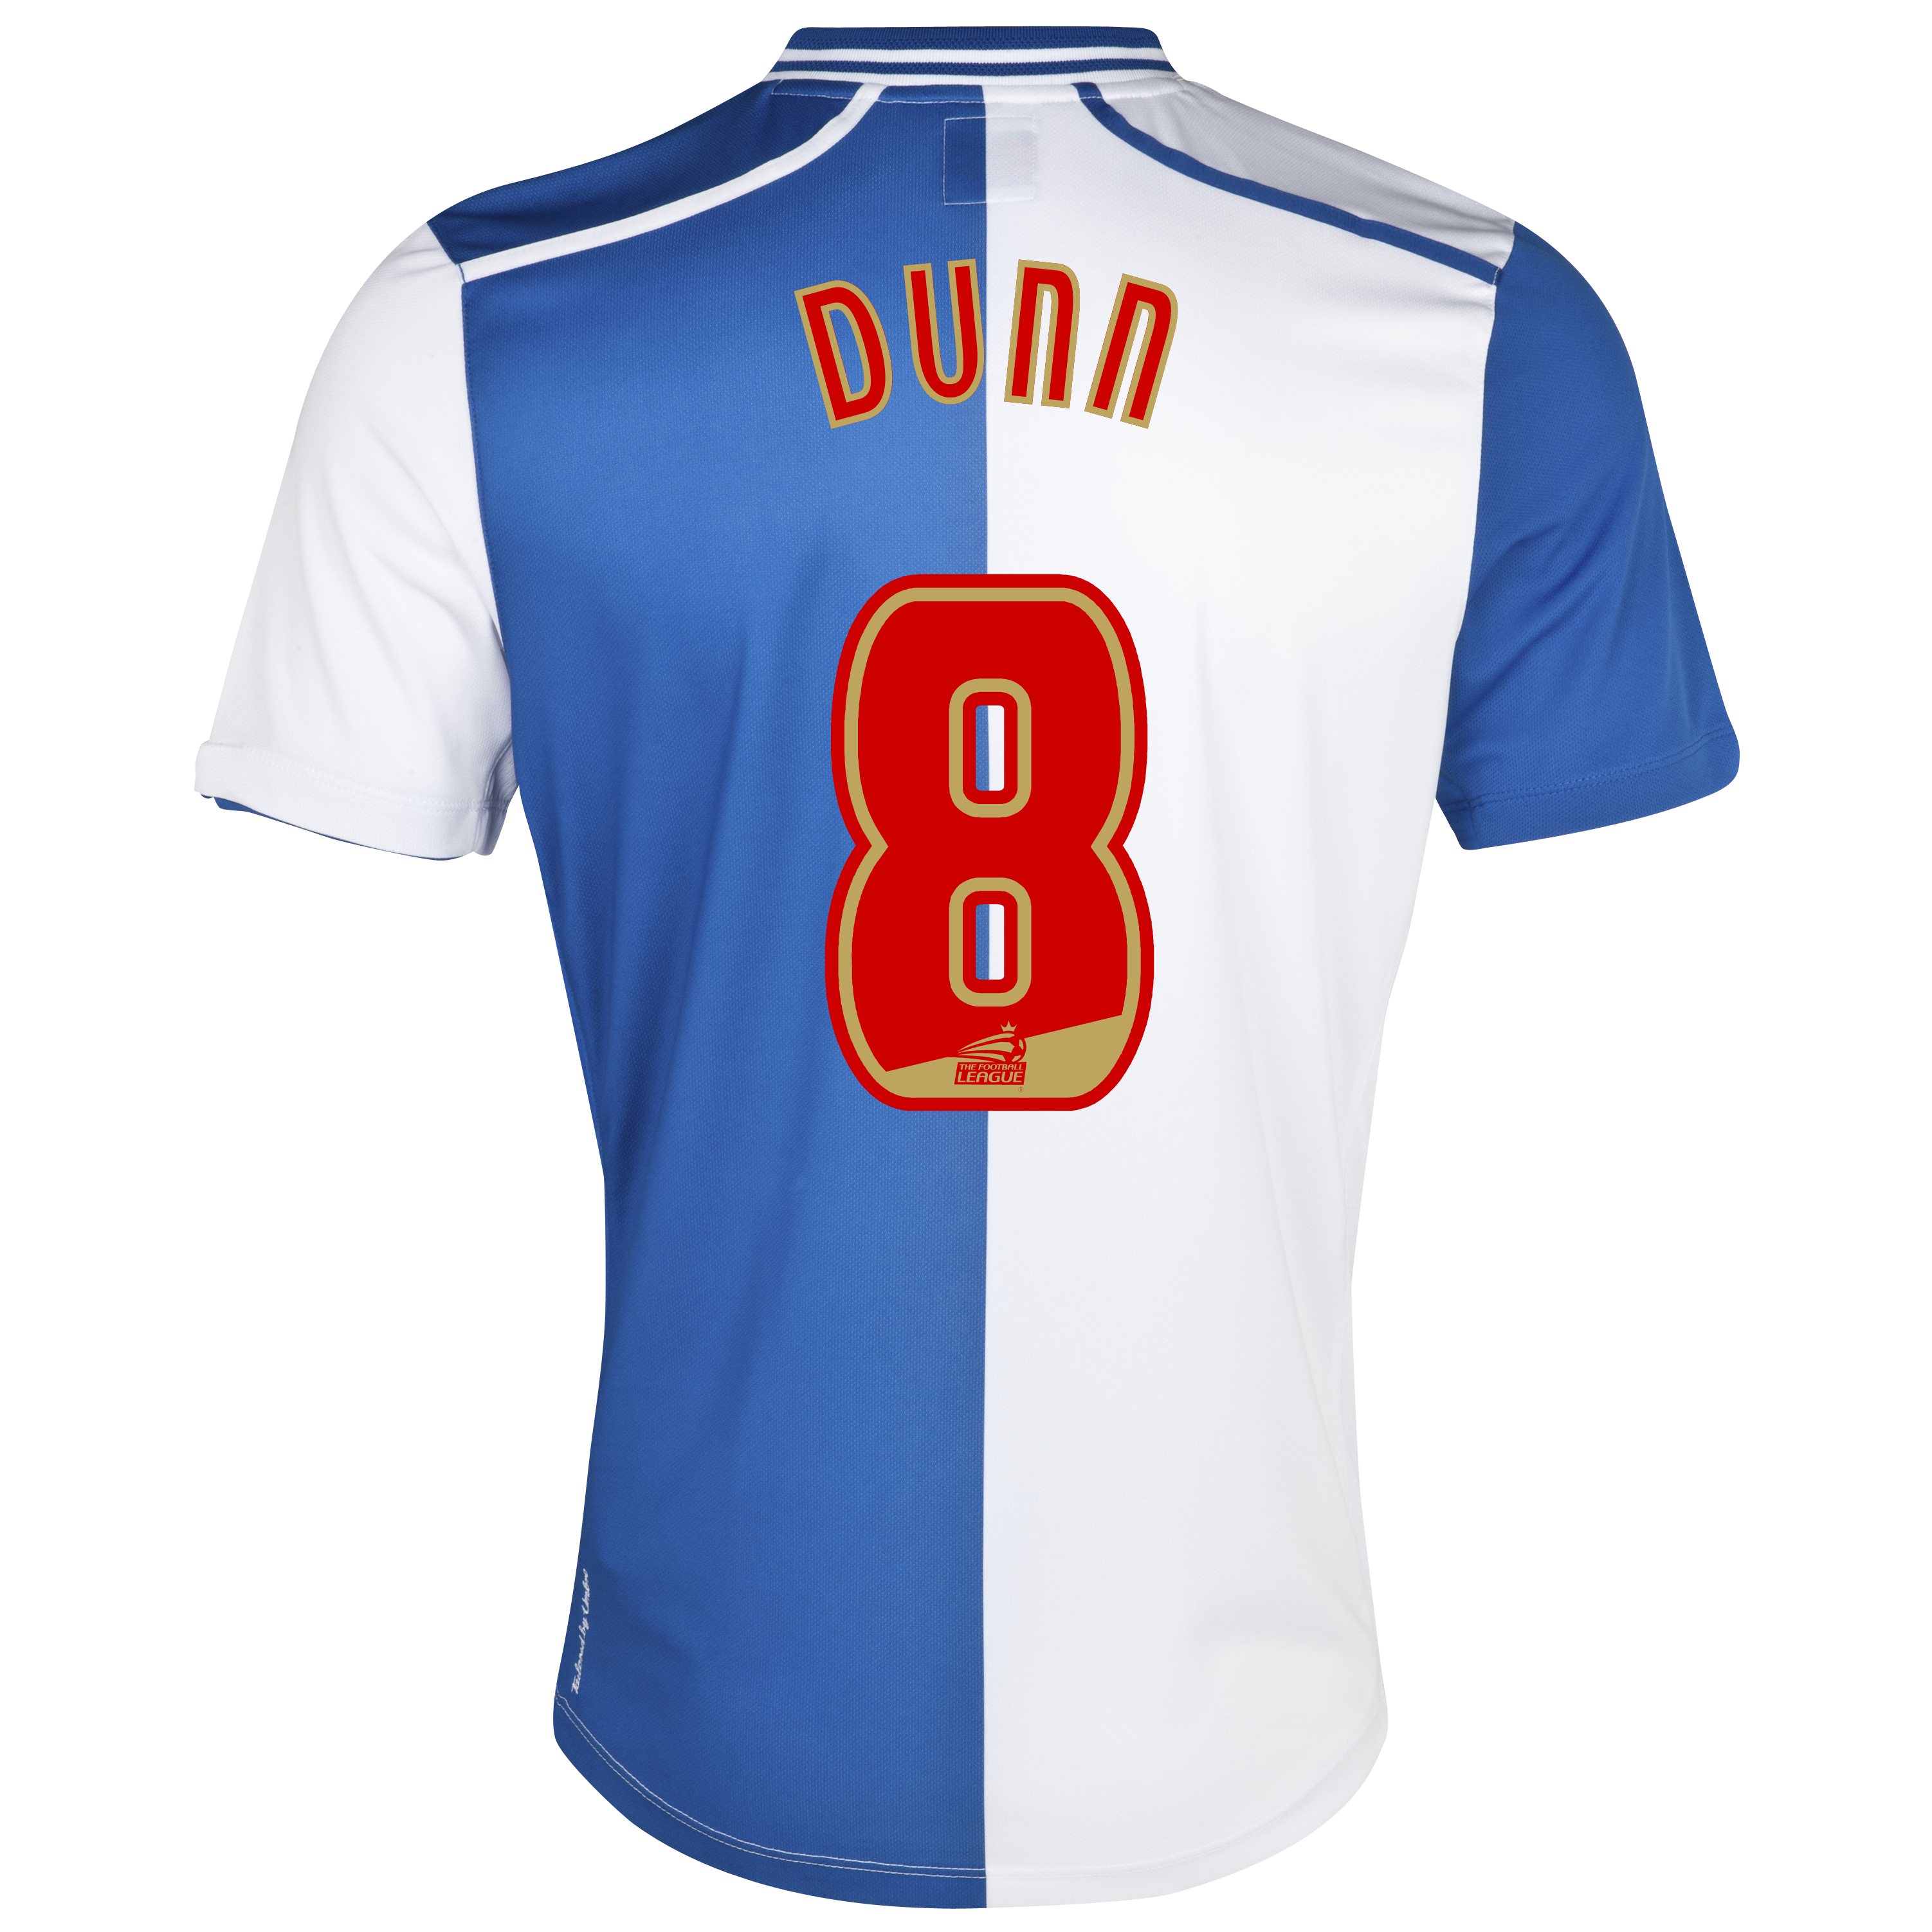 Blackburn Rovers Home Shirt 2012/13 with Dunn 8 printing